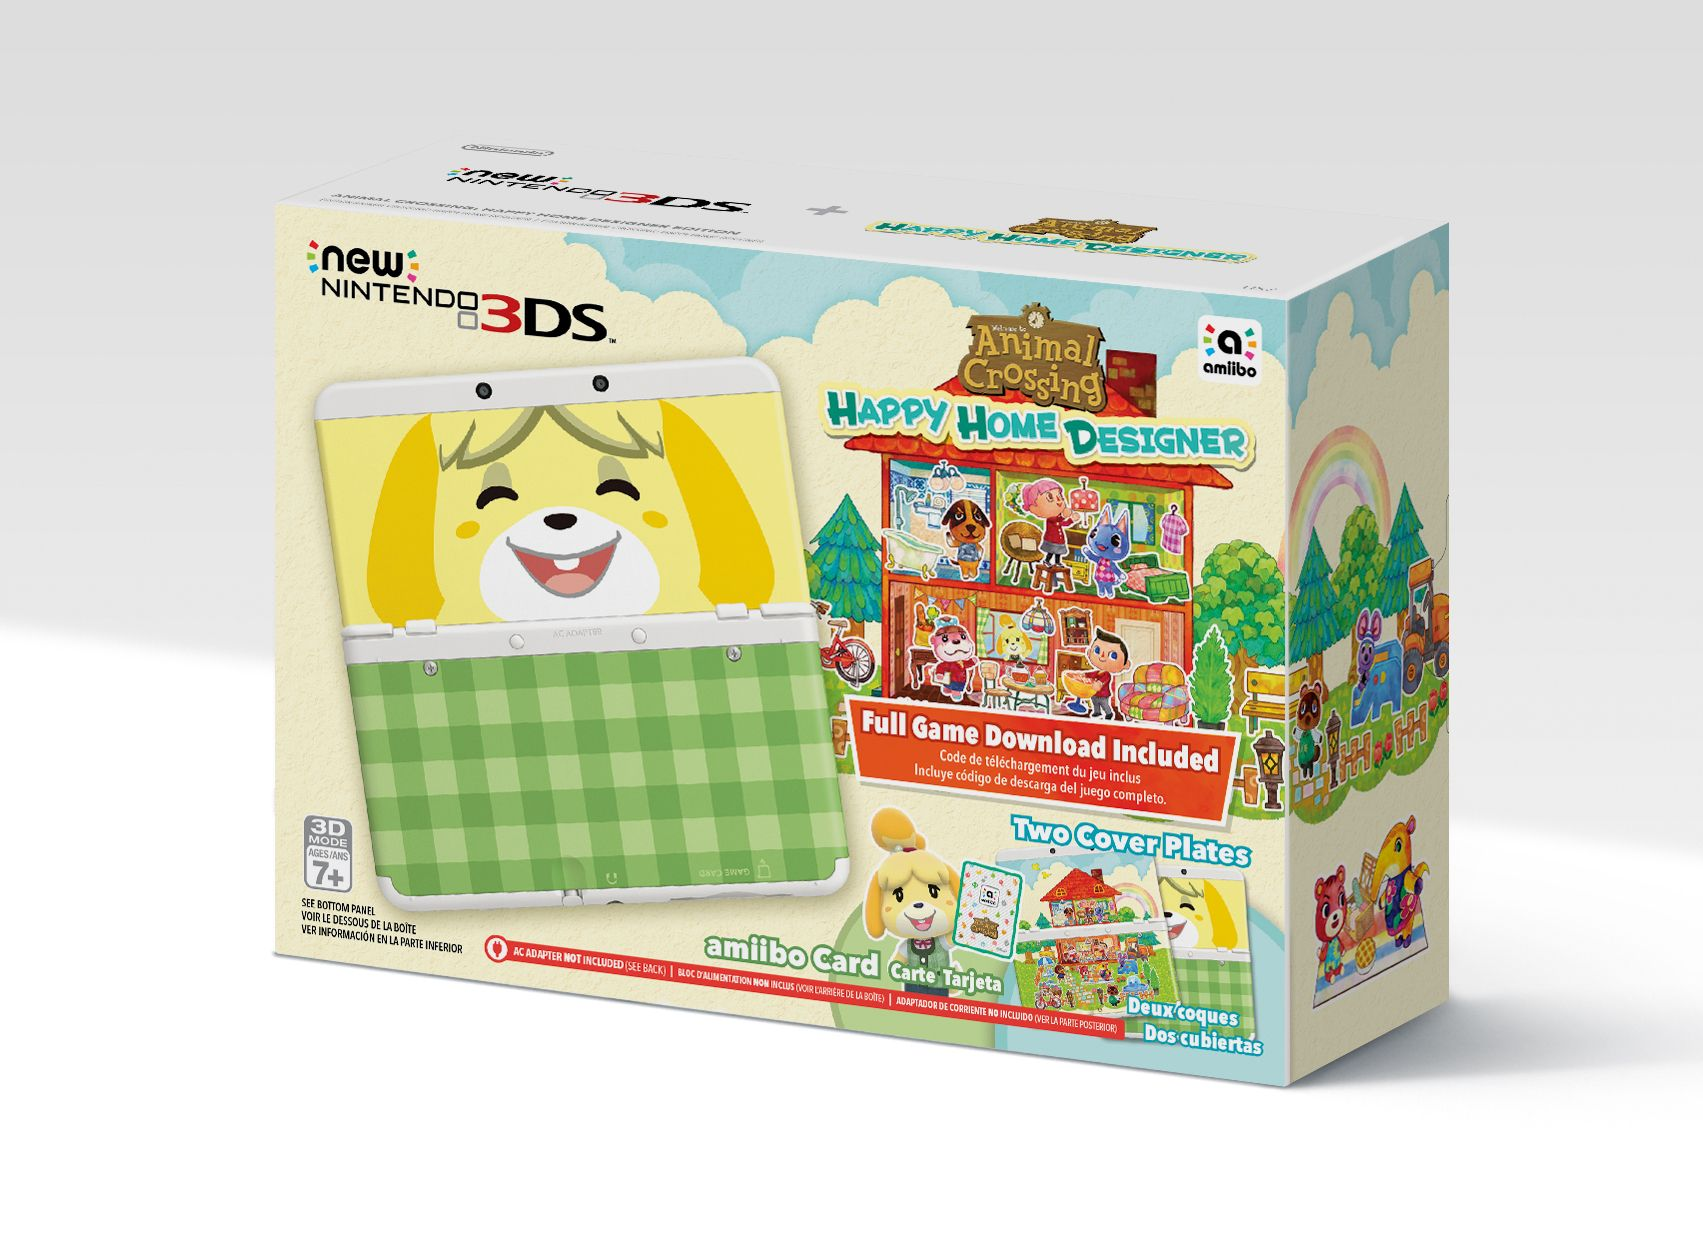 Regular new 3ds coming to north america on september 25 - Animal crossing happy home designer bundle ...